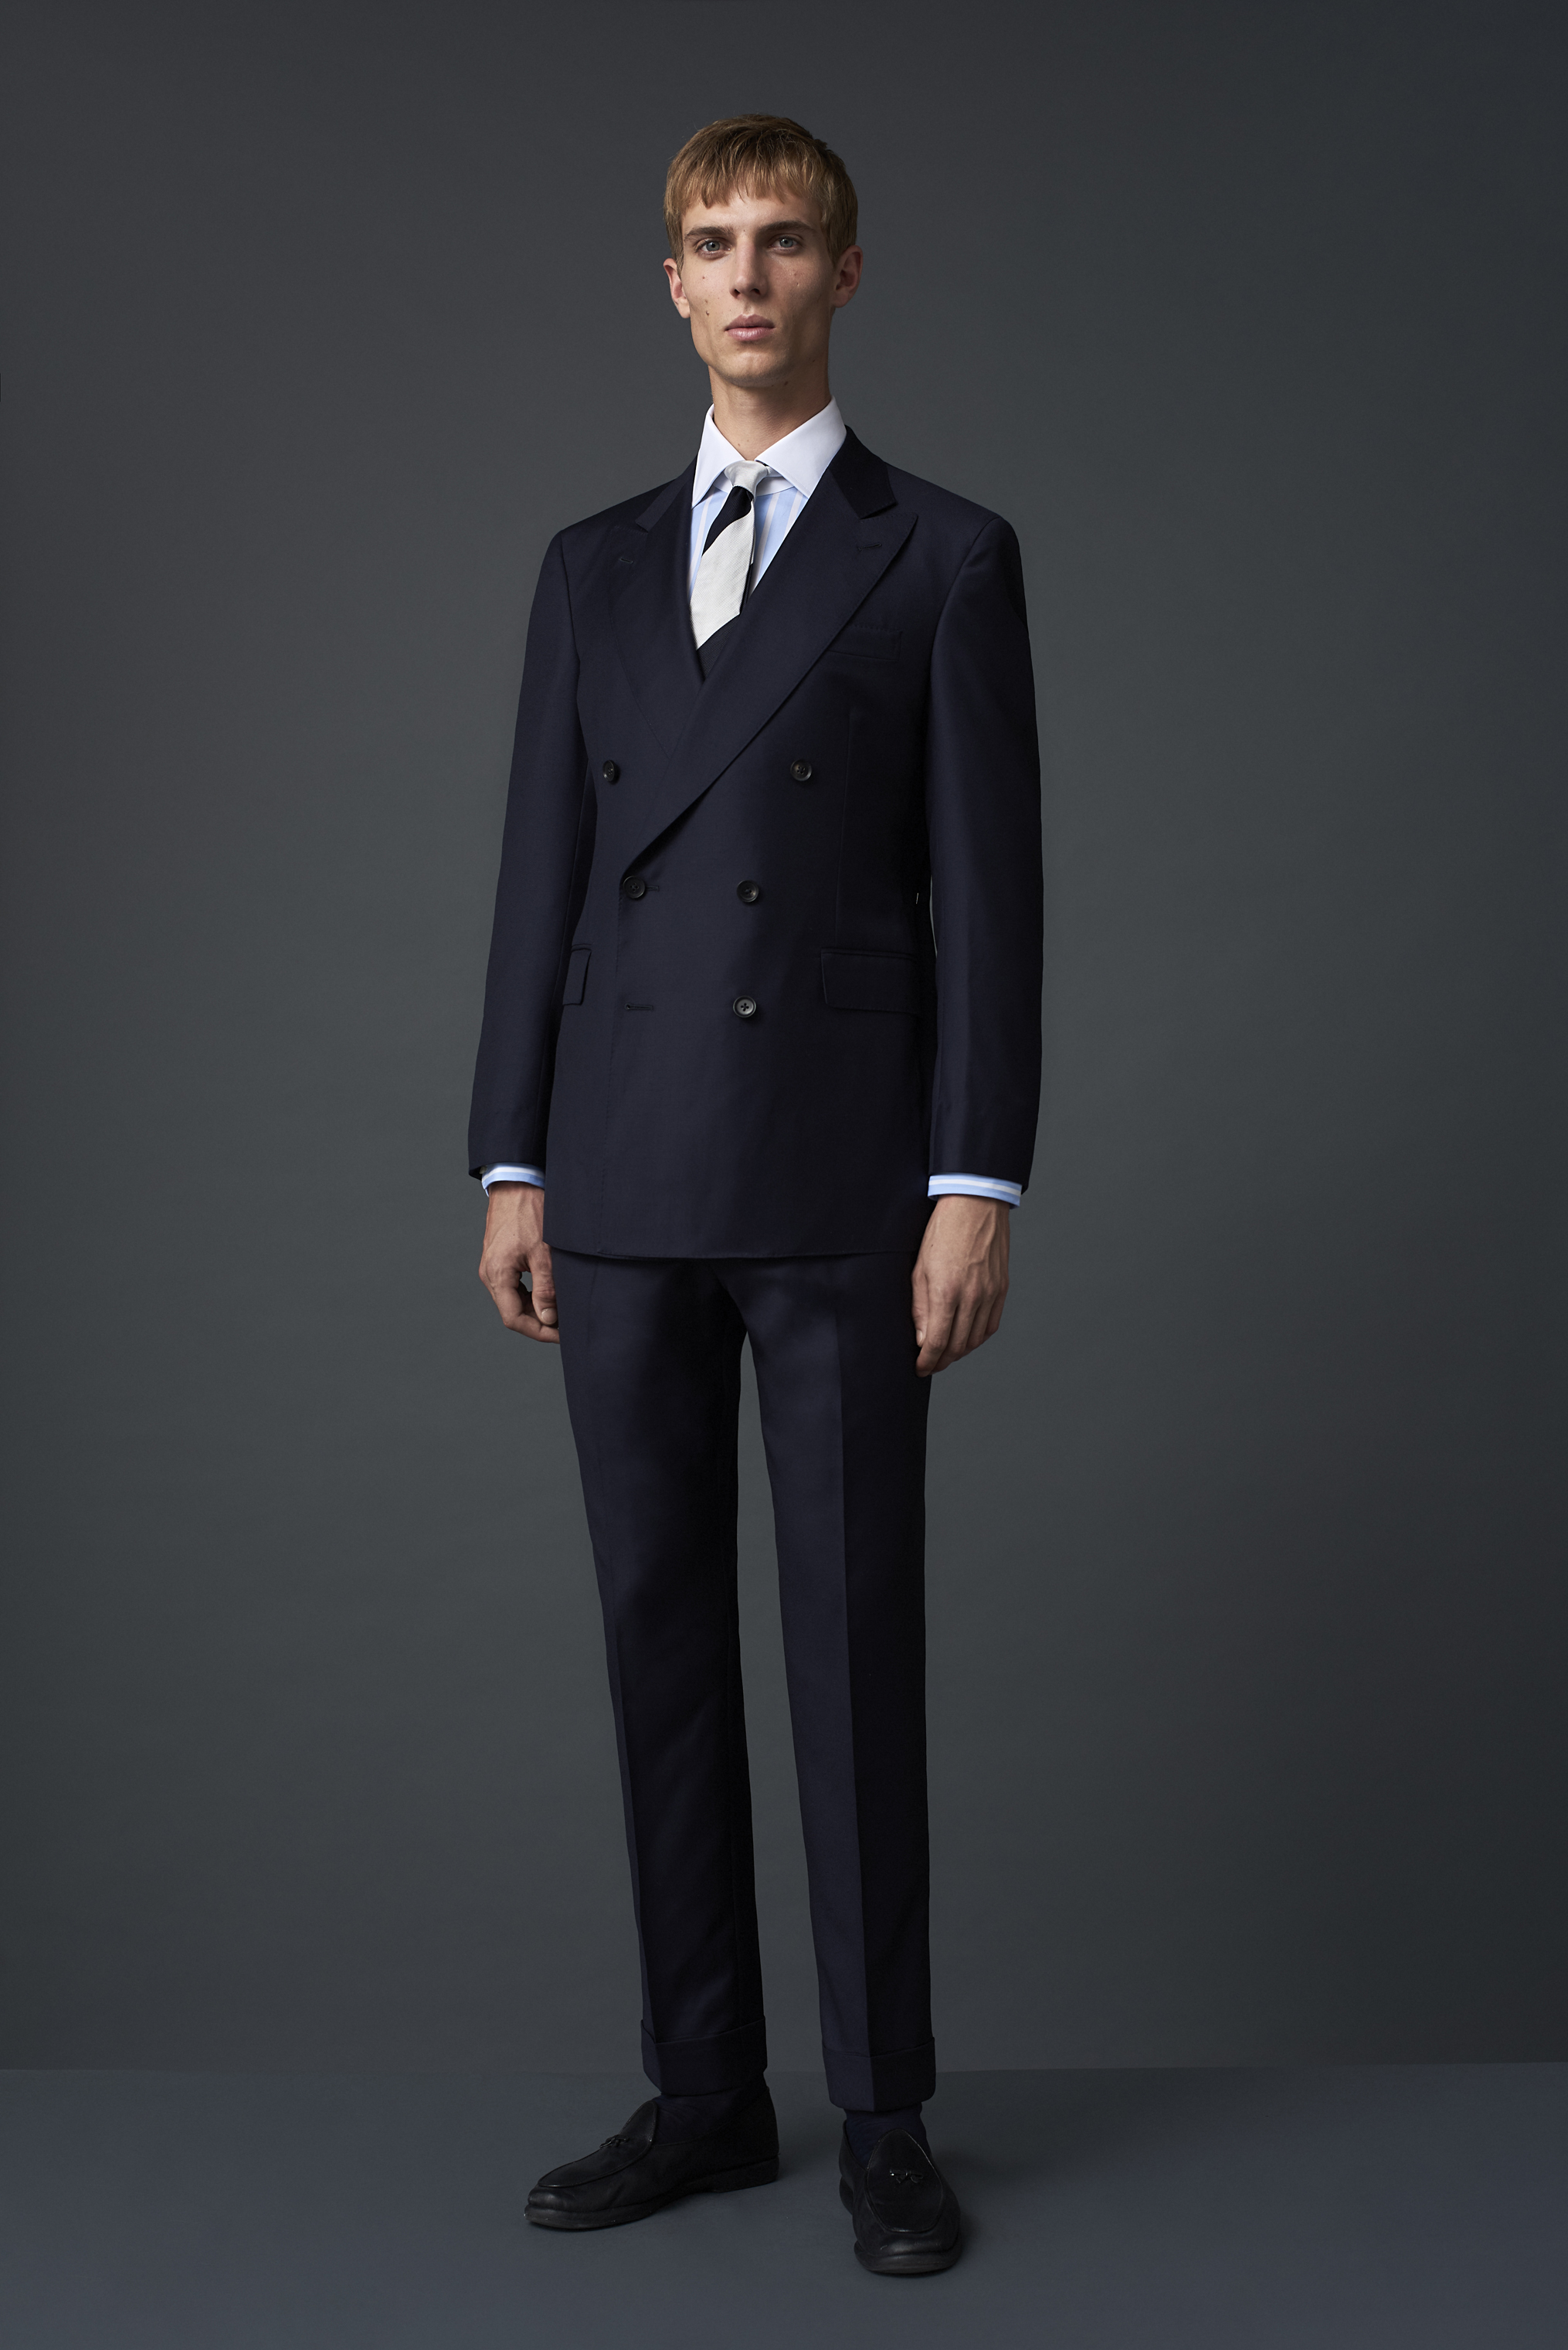 S130 merino double breasted suit woven in Biella, with dark buffalo horn buttons. Worn with a wide striped Egyptian cotton shirt with a contrast white collar and a thick silk twill tie woven in Italy.